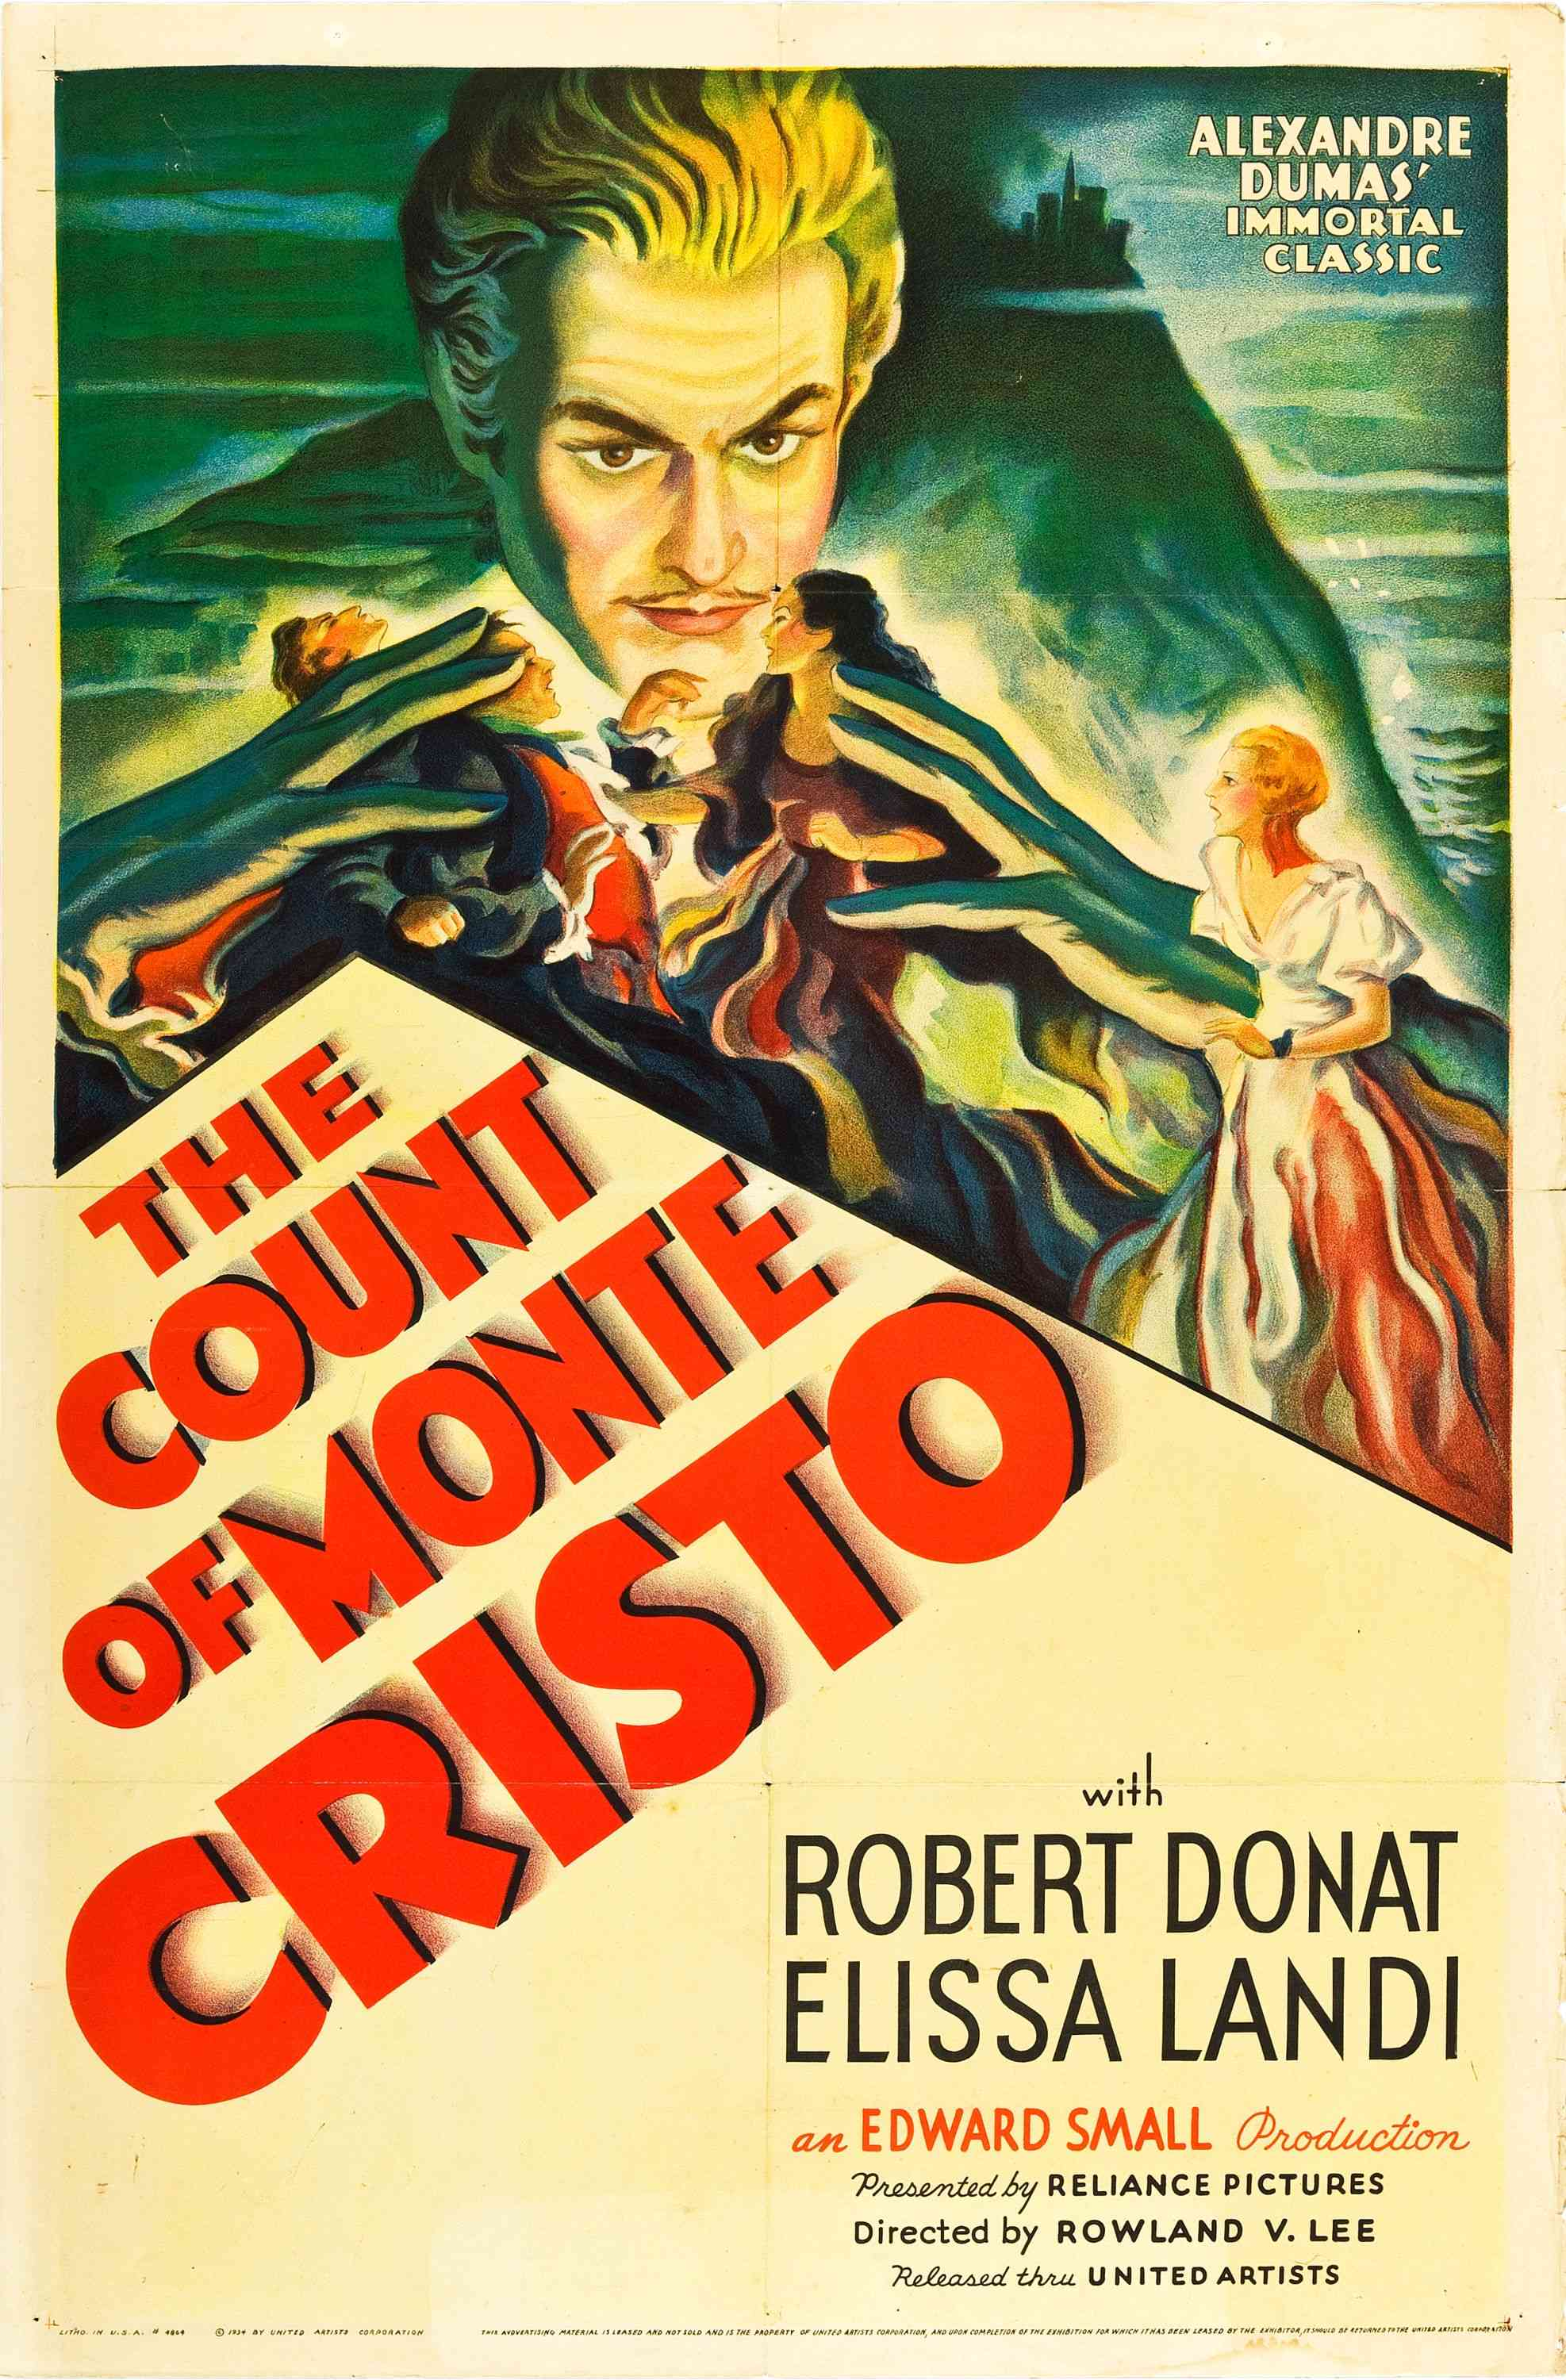 the count of monte cristo Buy the print the count of monte cristo sparknote on bncom  the count of  monte cristo (sparknotes literature guide series) paperback $595 shop now .